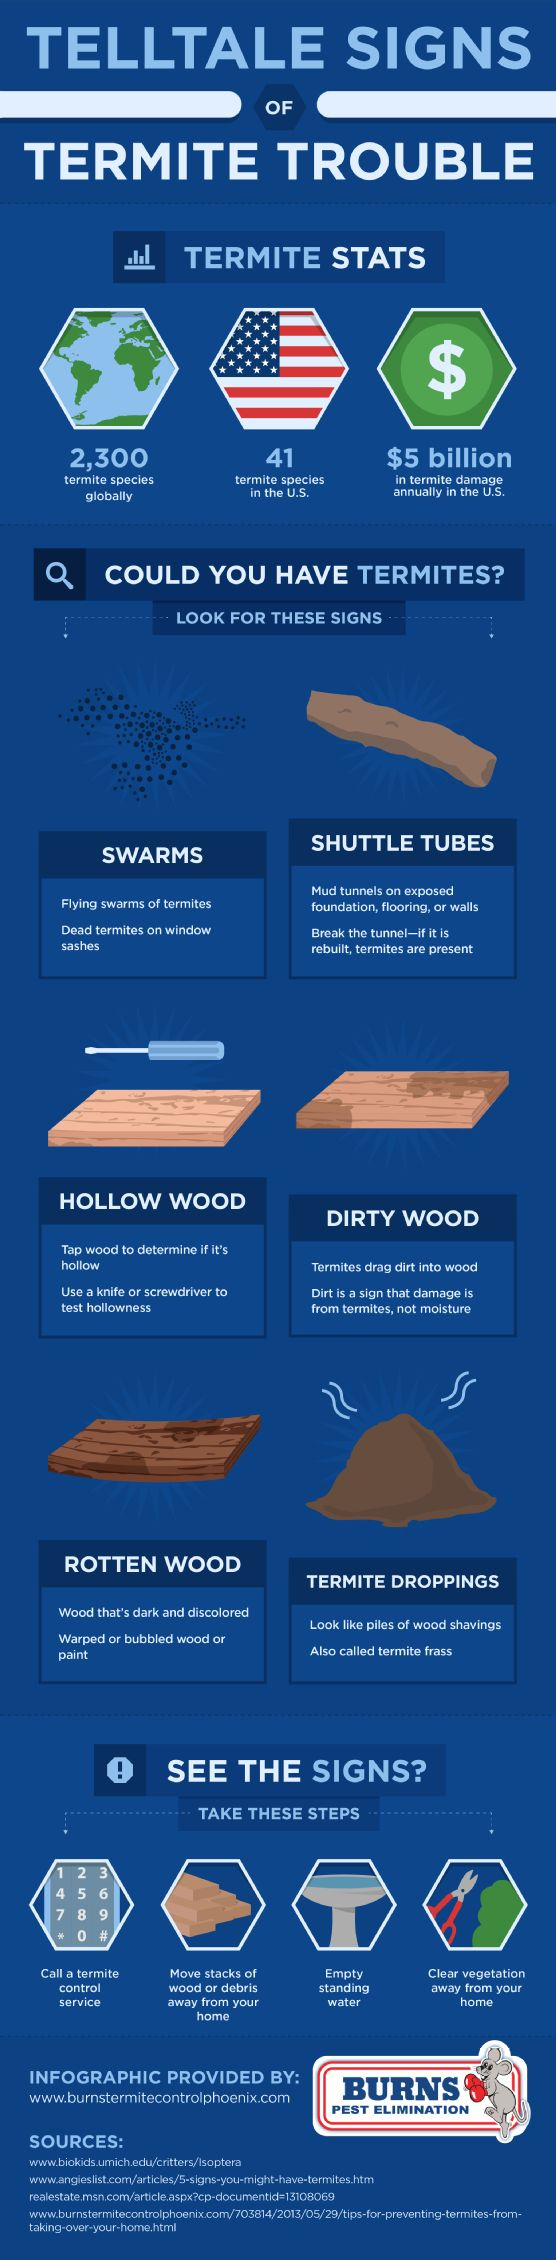 Swarms, shuttle tubes, hollow wood, dirty wood, damaged or rotten wood, and droppings are all signs of termites. Learn about spotting termites and getting rid of them in this infographic from a termite treatment company in Phoenix.